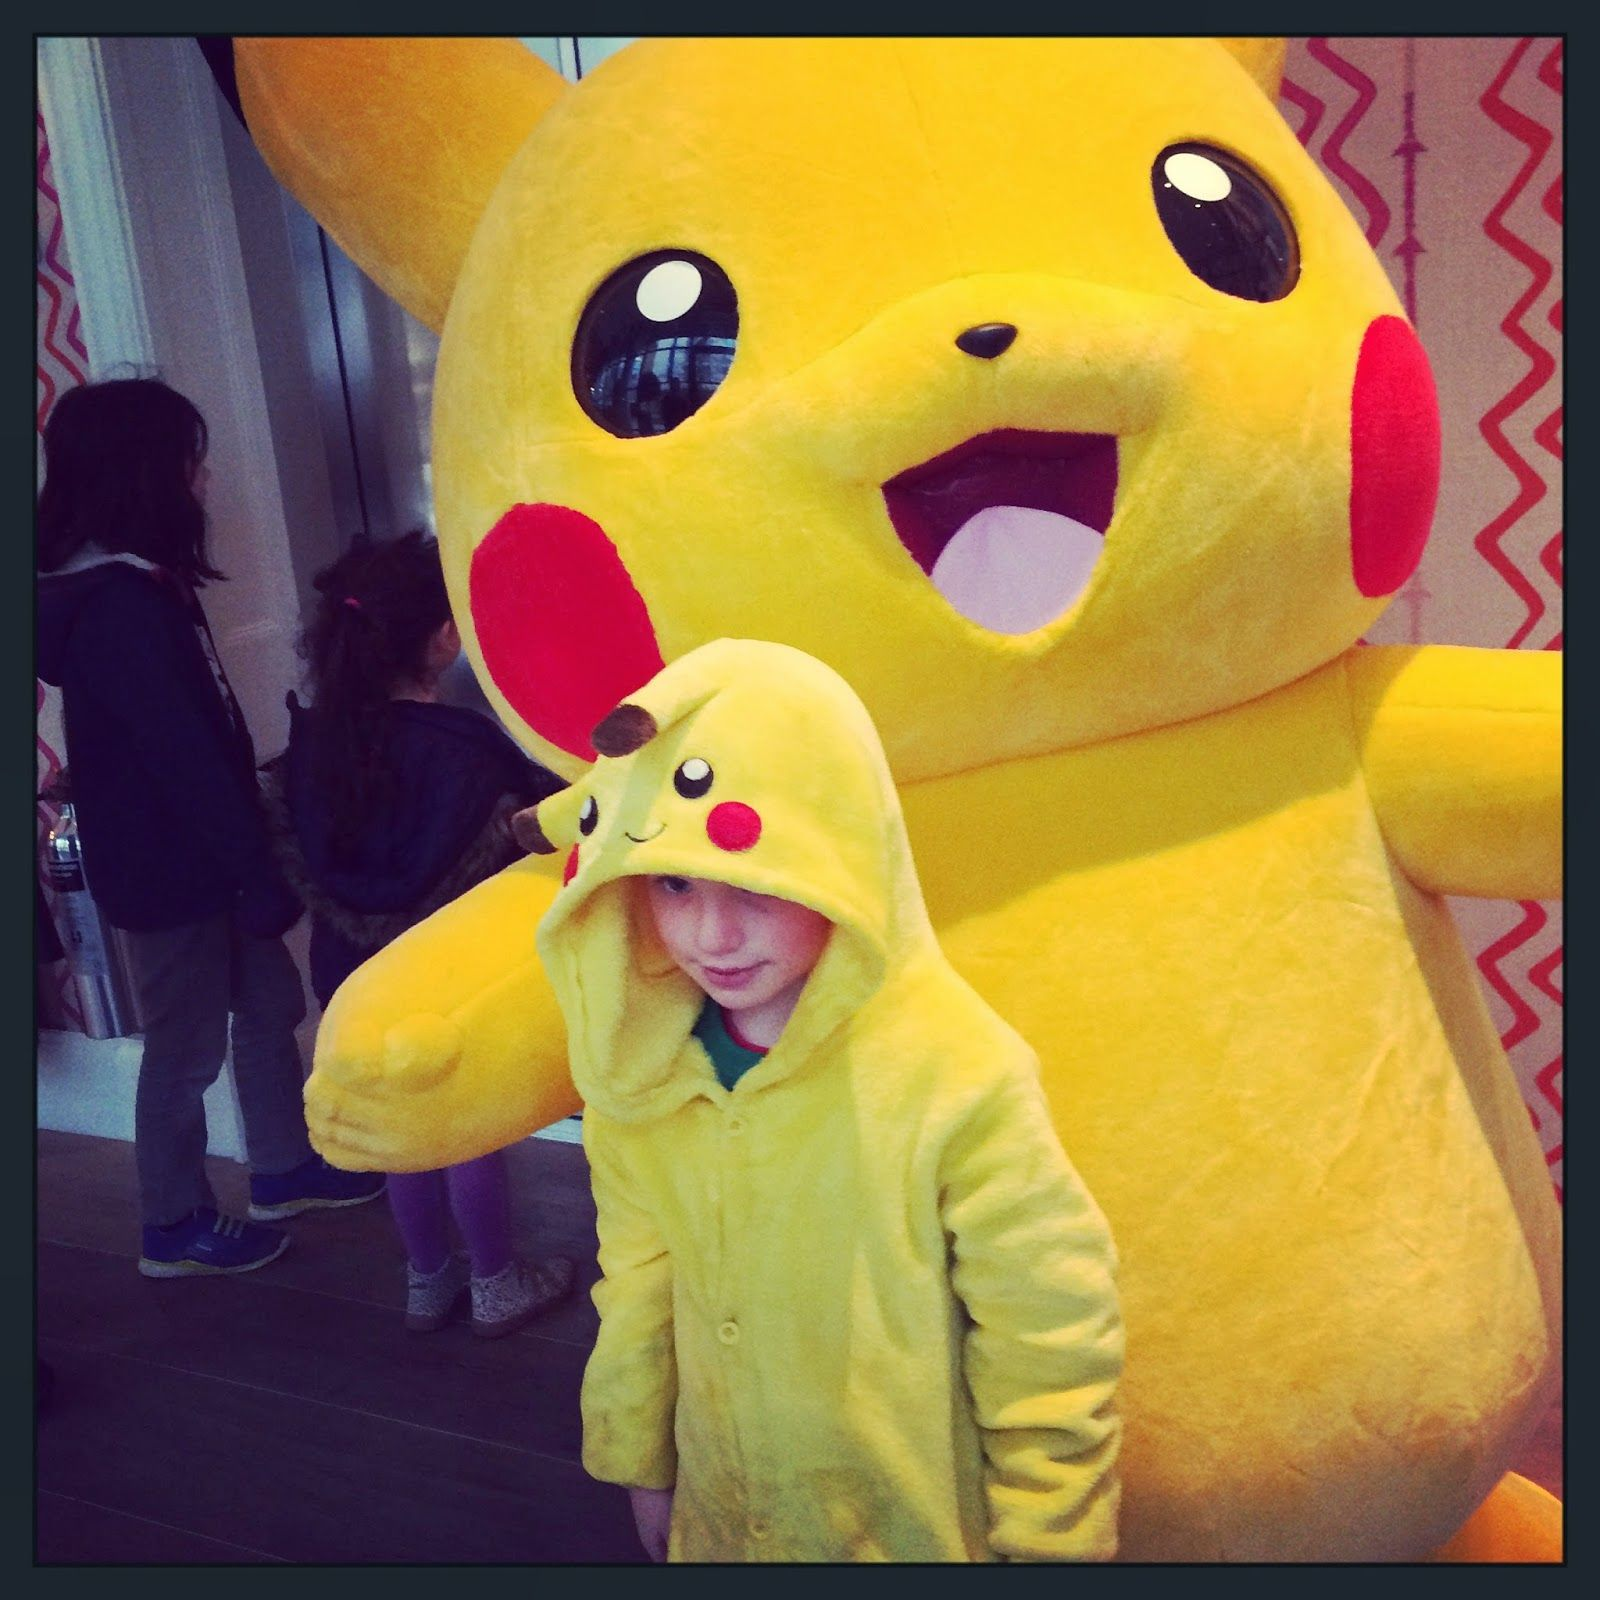 Pikachu! Pokemon fun with new games and a new movie just in time for ...